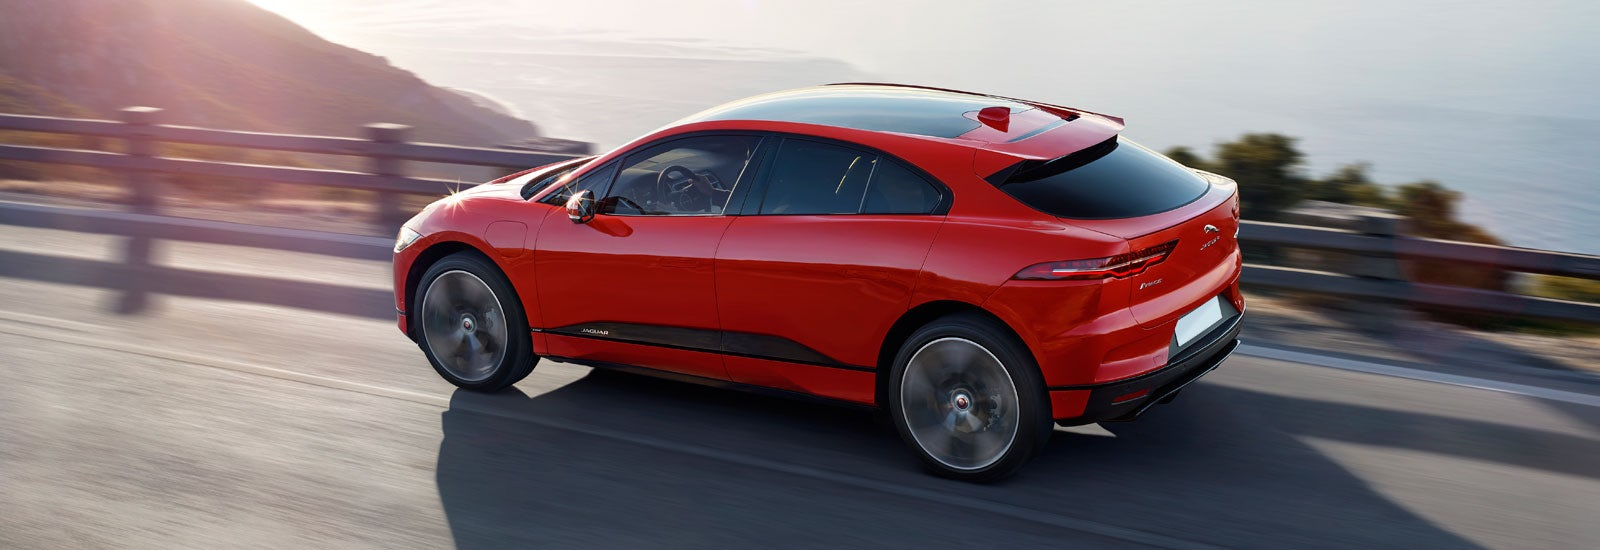 2018 Jaguar I Pace Electric Suv Price Specs And Release Date Carwow